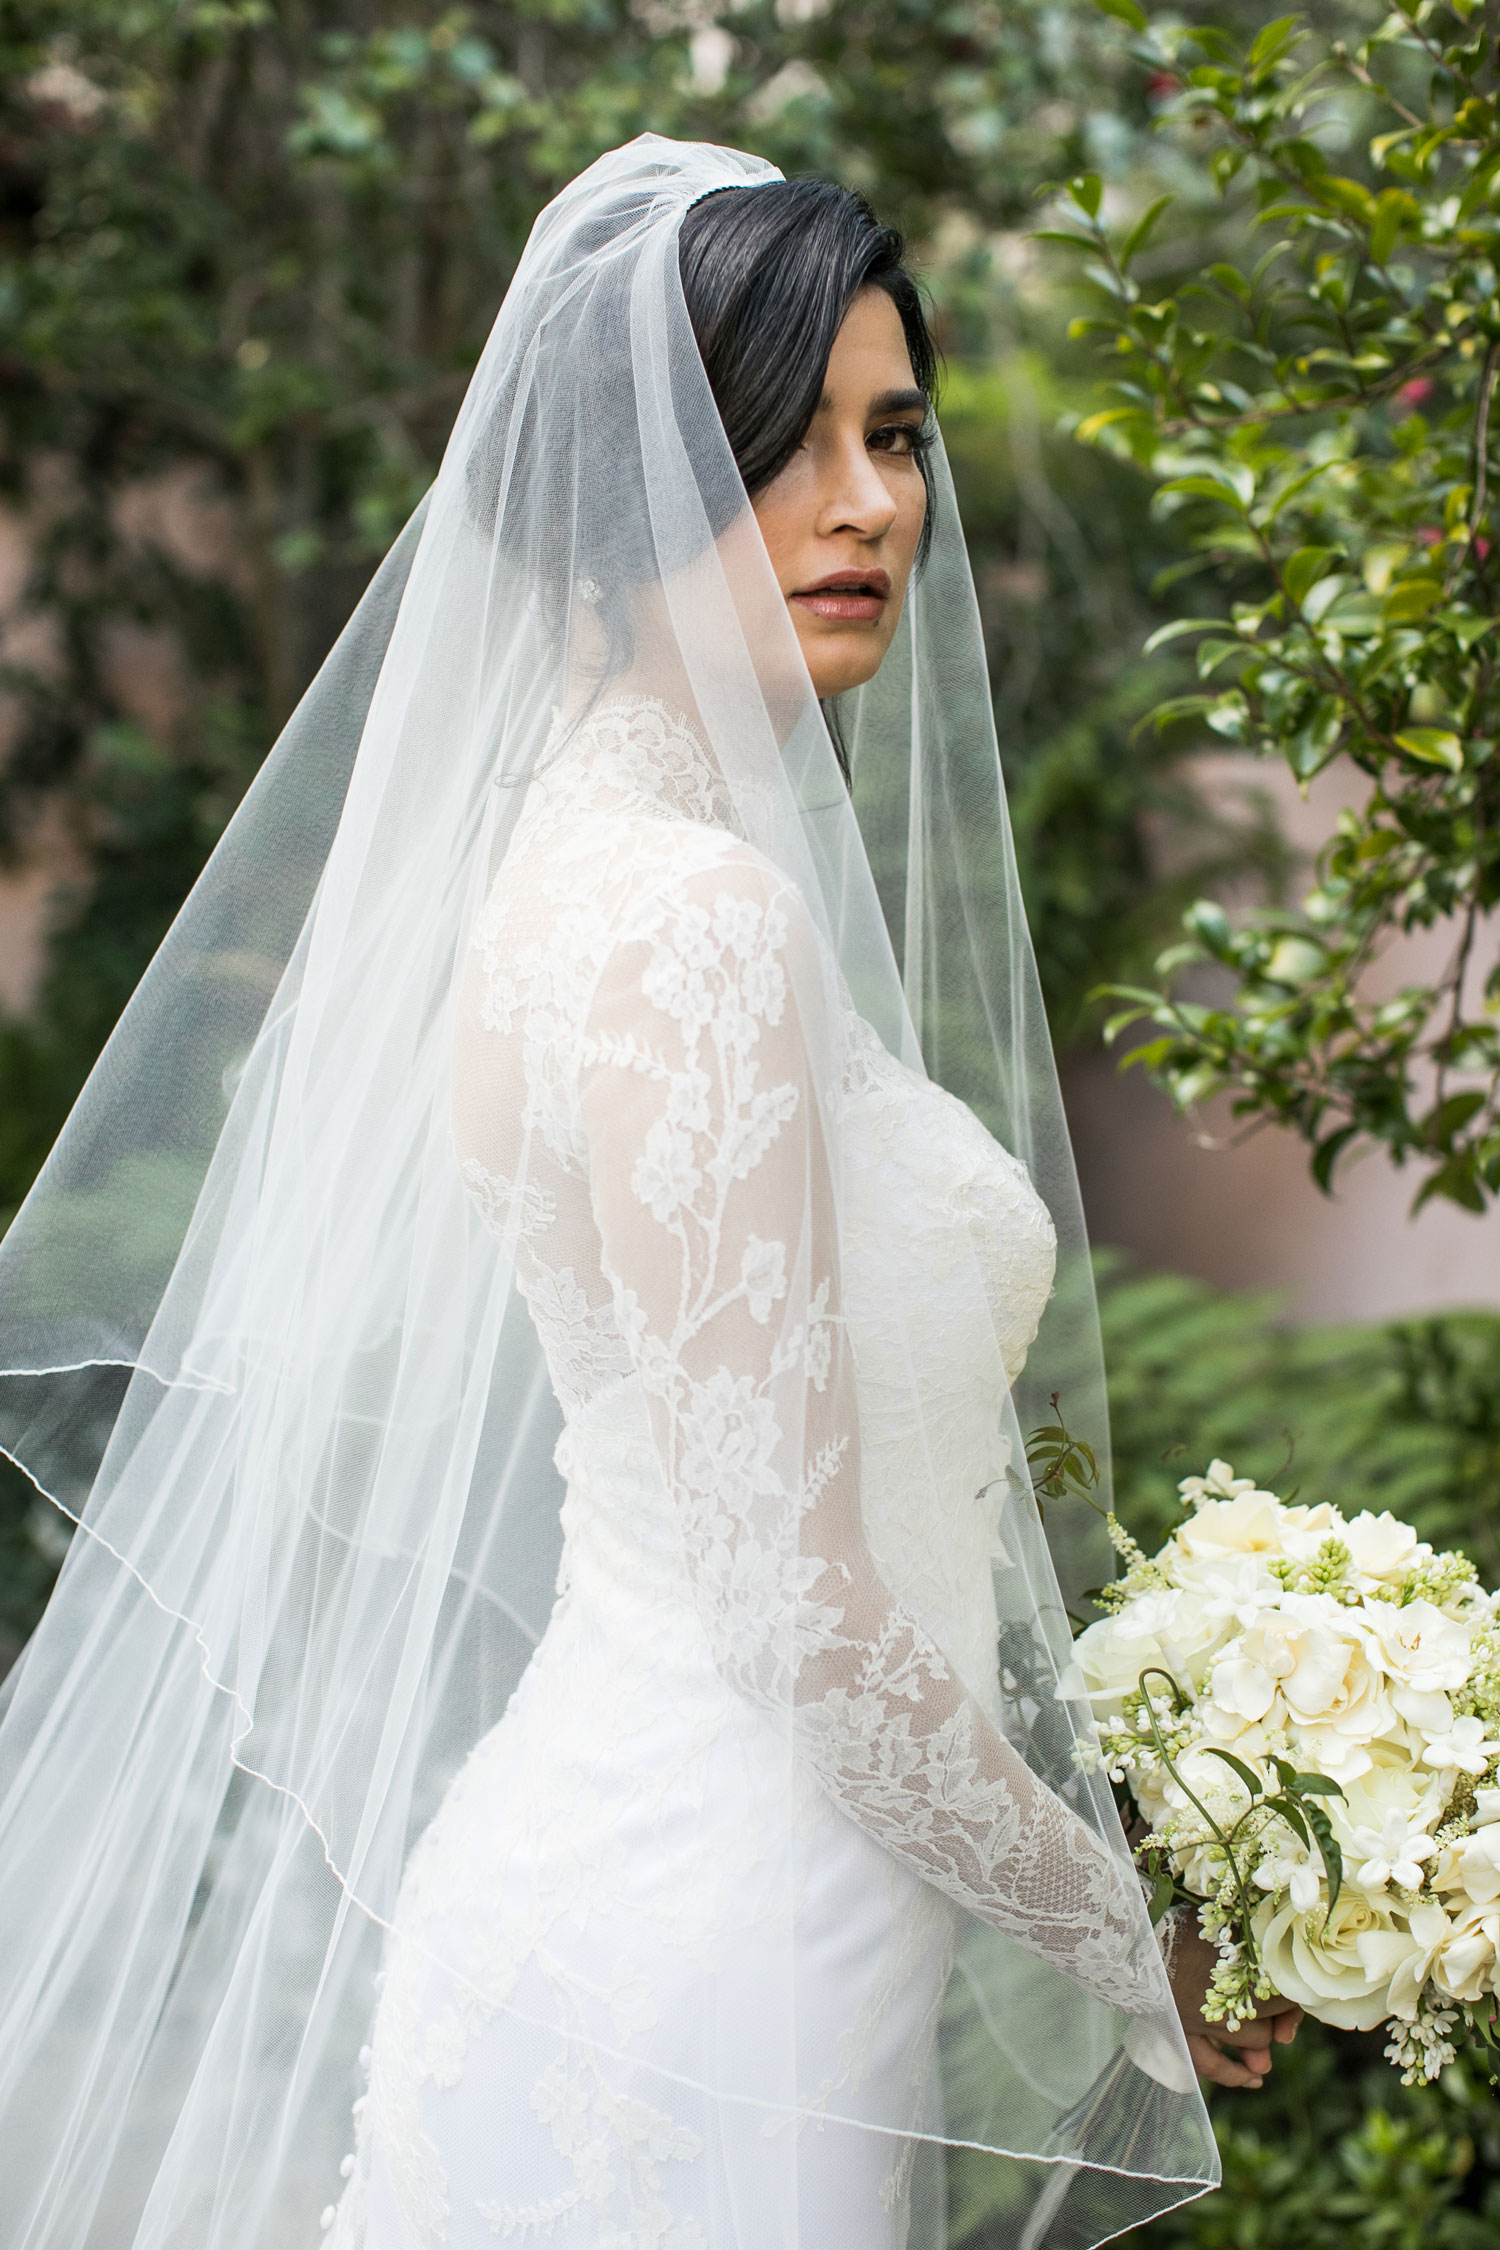 Should You Wear A Bridal Veil At Your Wedding